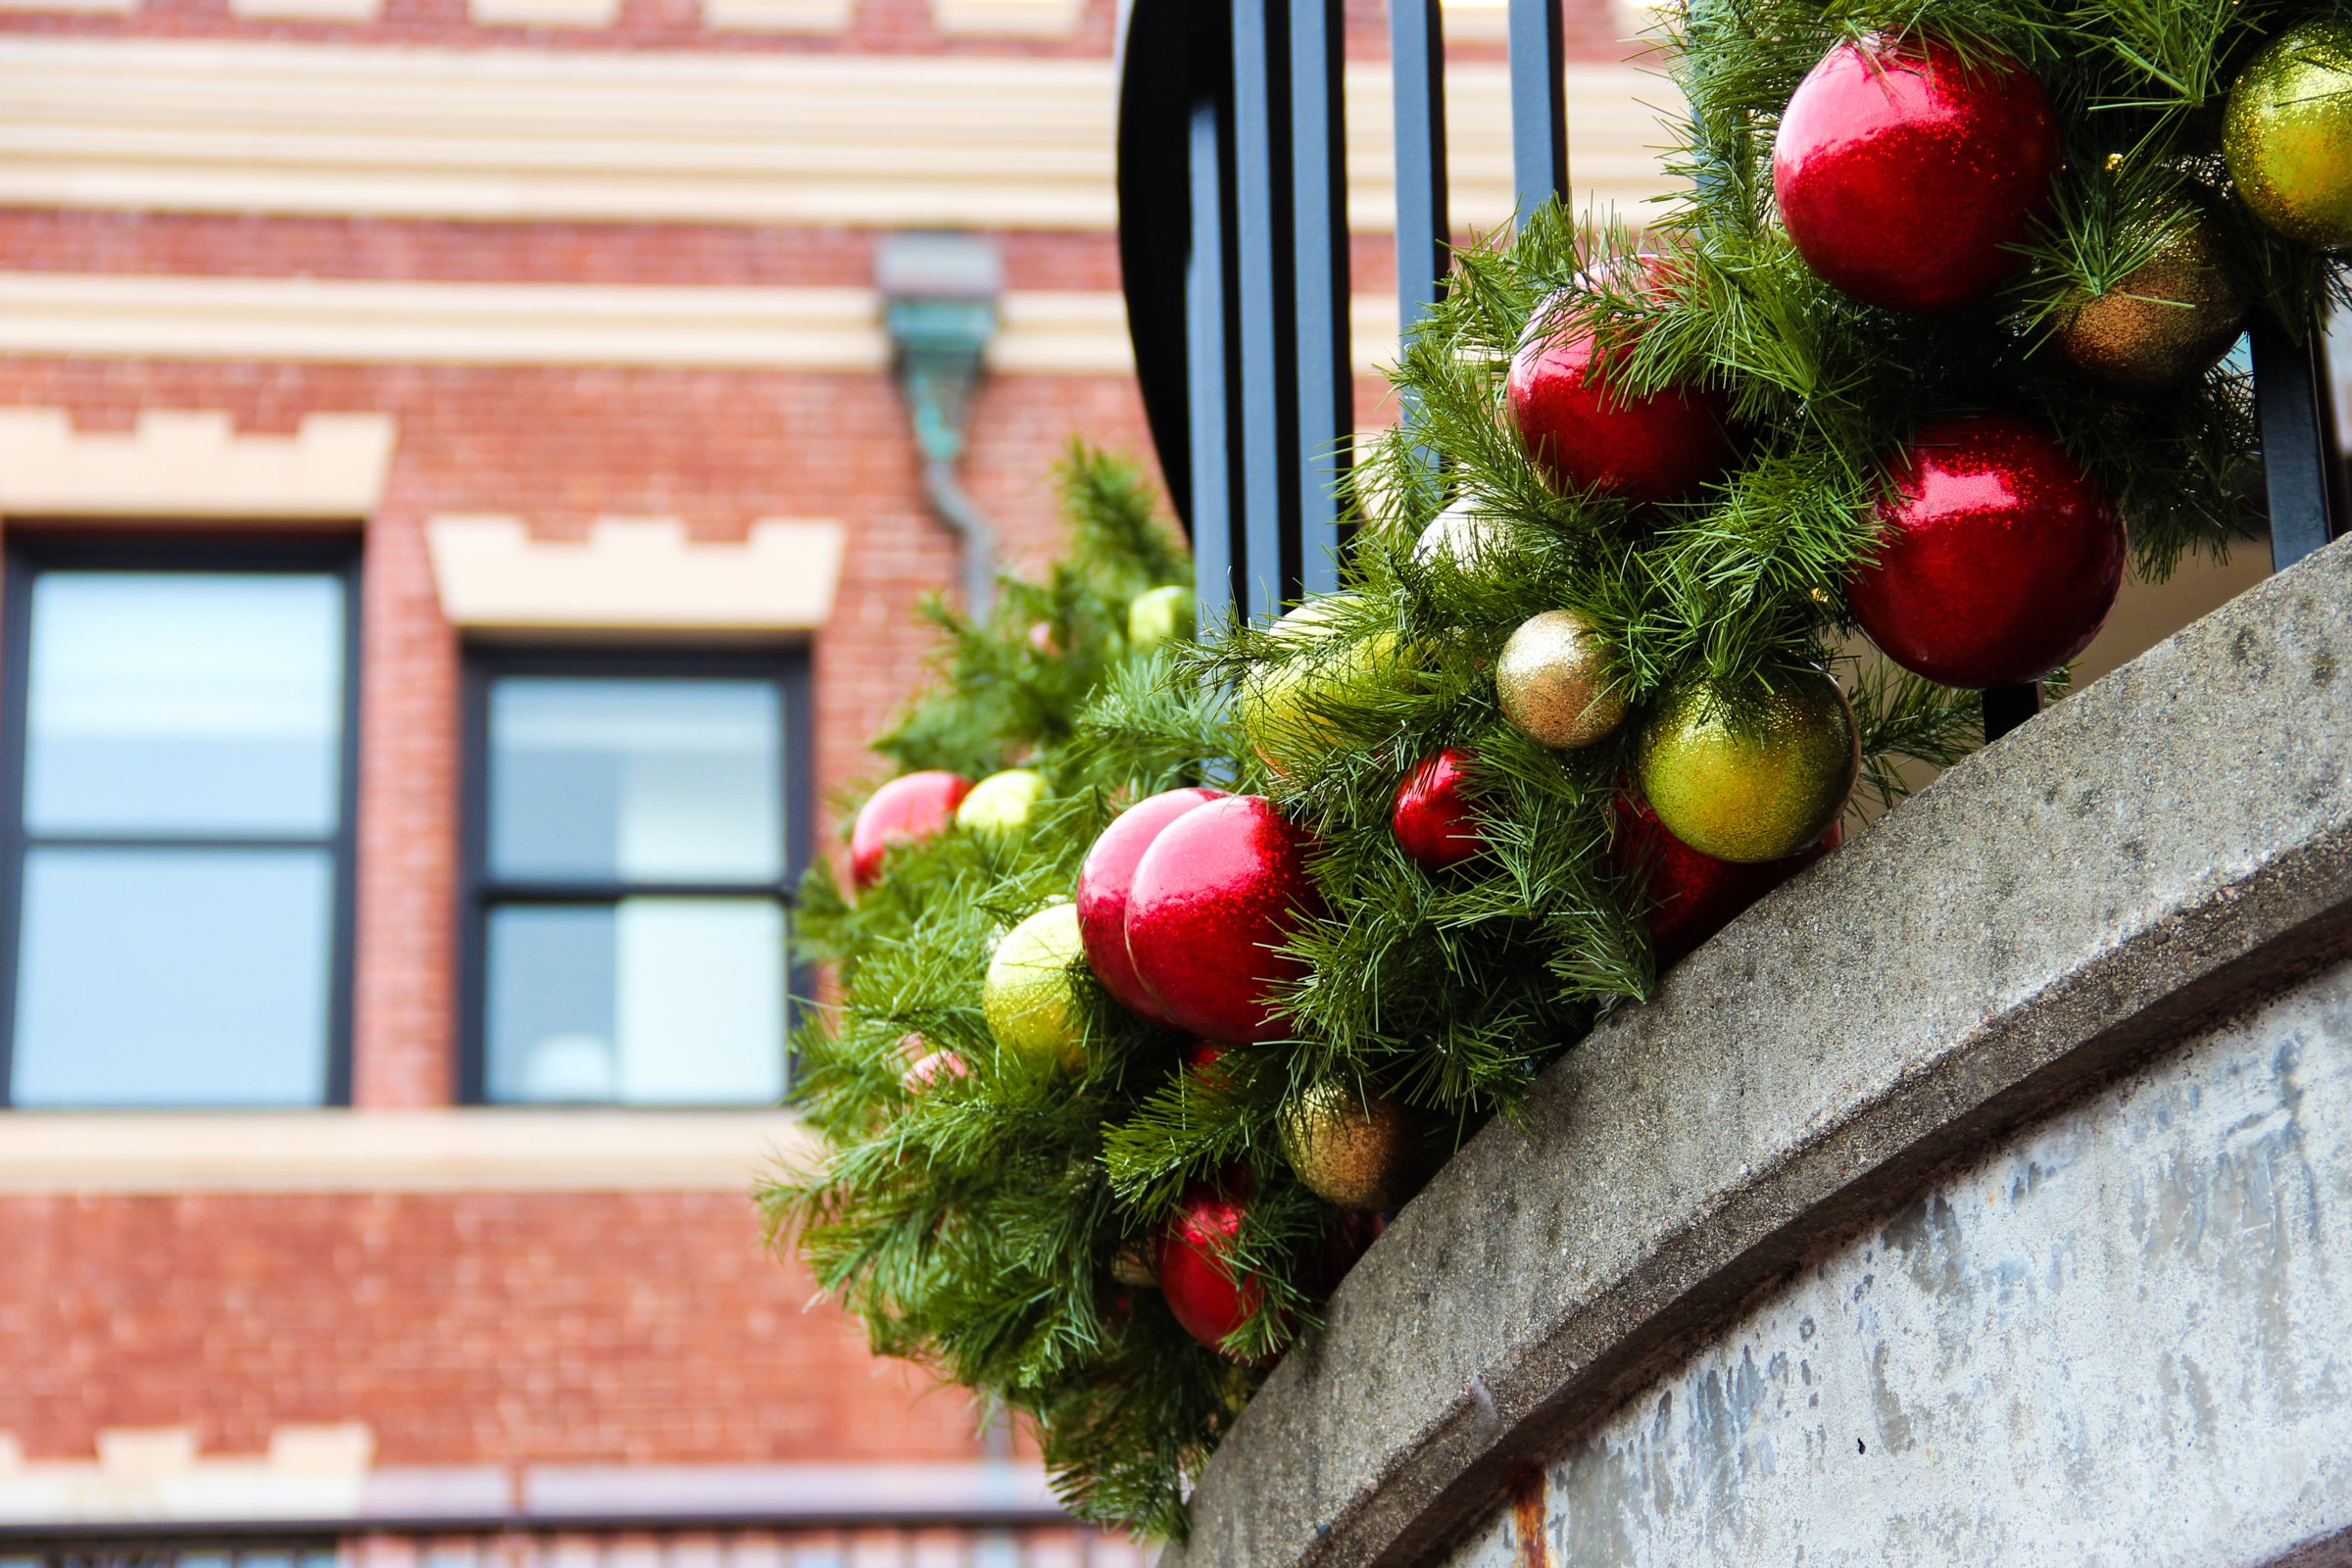 Christmas Decorations On Building Exterior